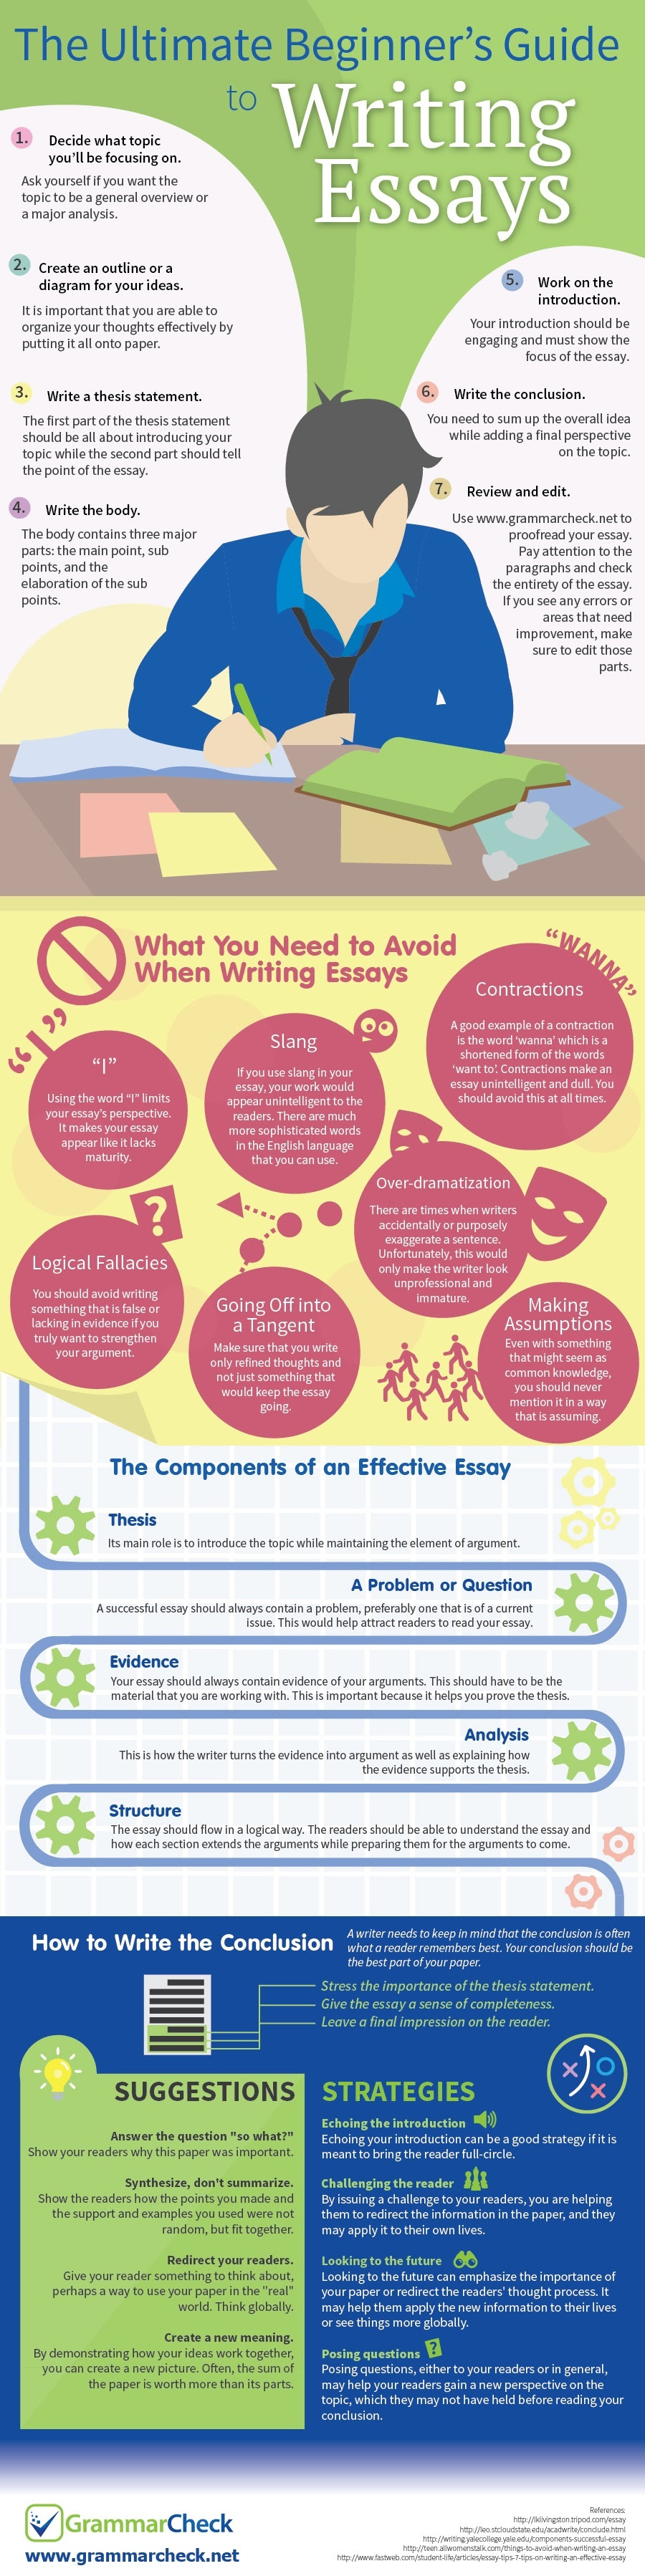 The Ultimate Beginner's Guide to Writing Essays (Infographic)